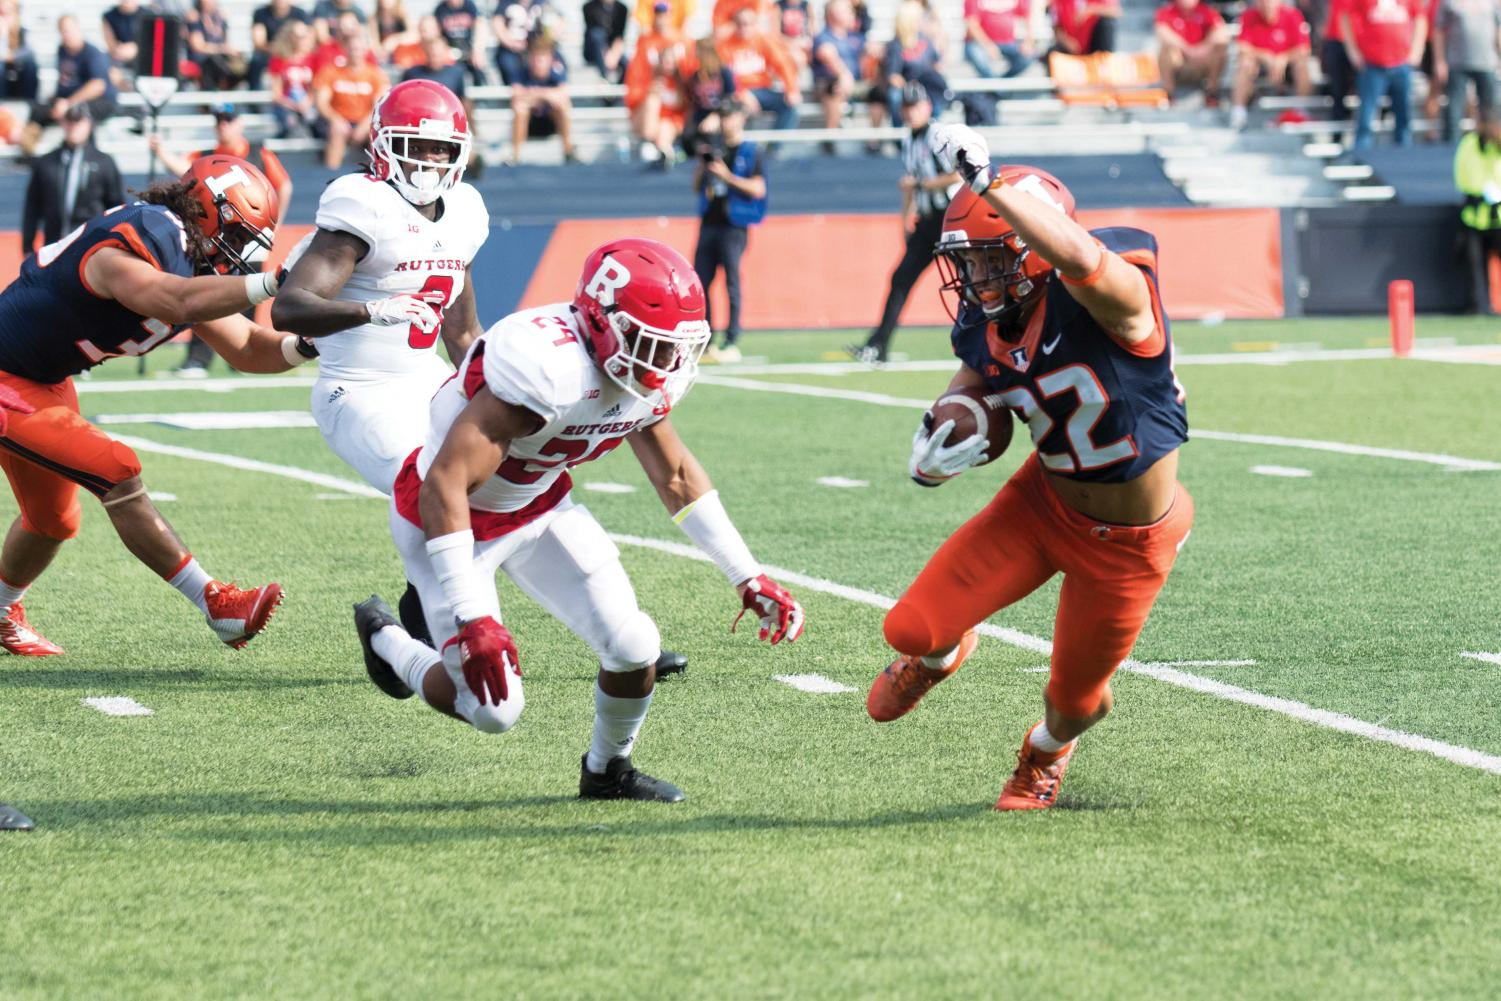 Illinois running back Kendrick Foster dodges defenders during the game against Rutgers on Oct. 24. Although Illinois lost to Wisconsin 35-24, Kendrick Foster intends to make the most of his last season as an Illini football player and take advantage of every opportunity.